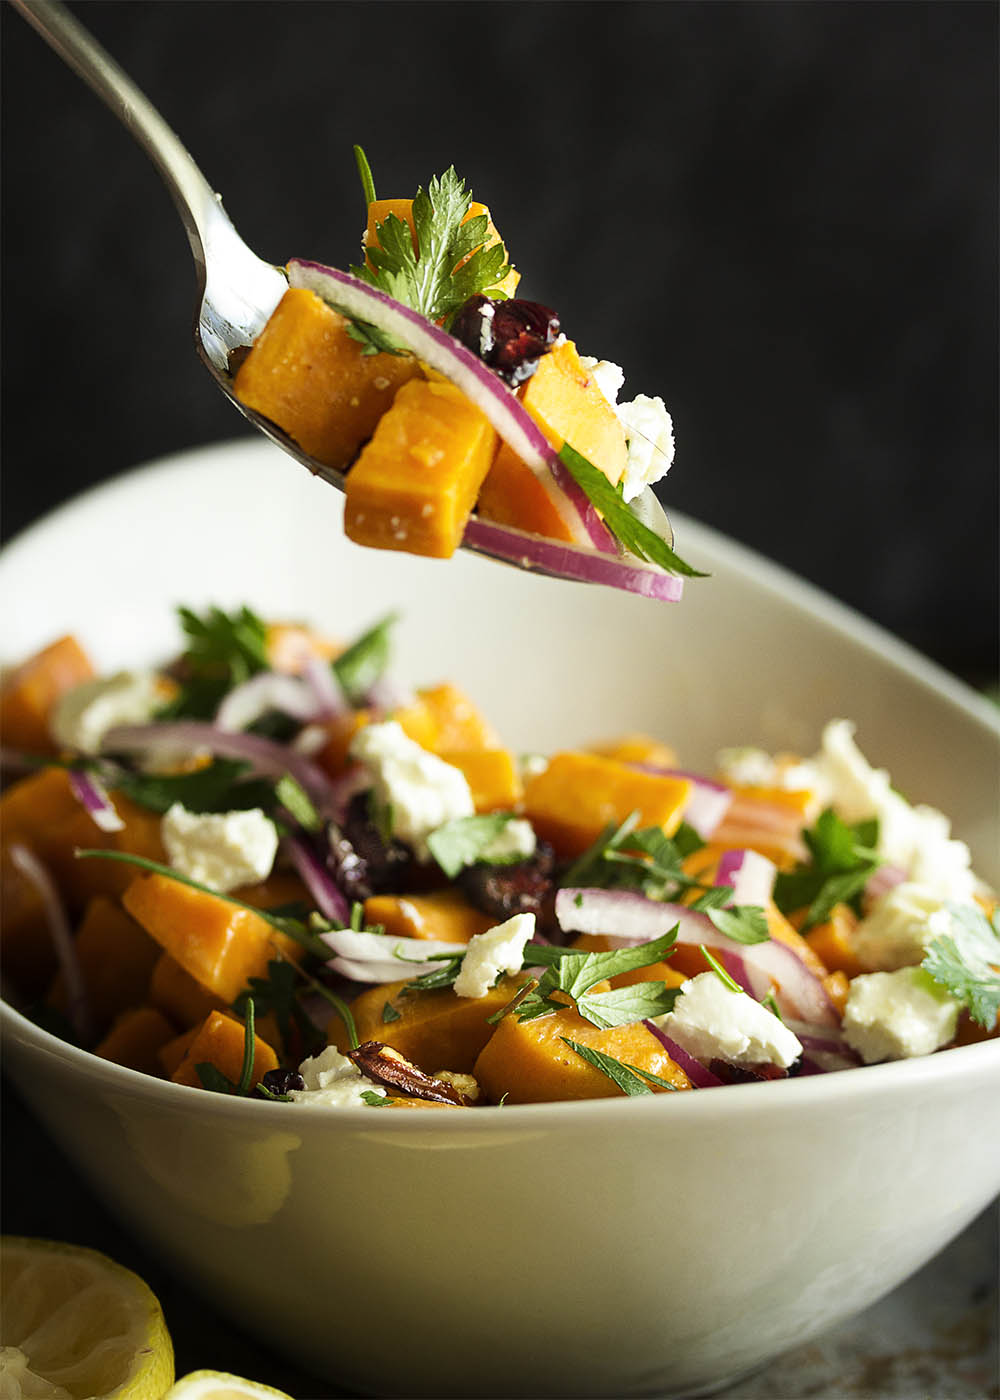 A big spoonful of sweet potato salad showing the sweet potatoes, onions, cranberries, pecans, goat cheese, and herbs.